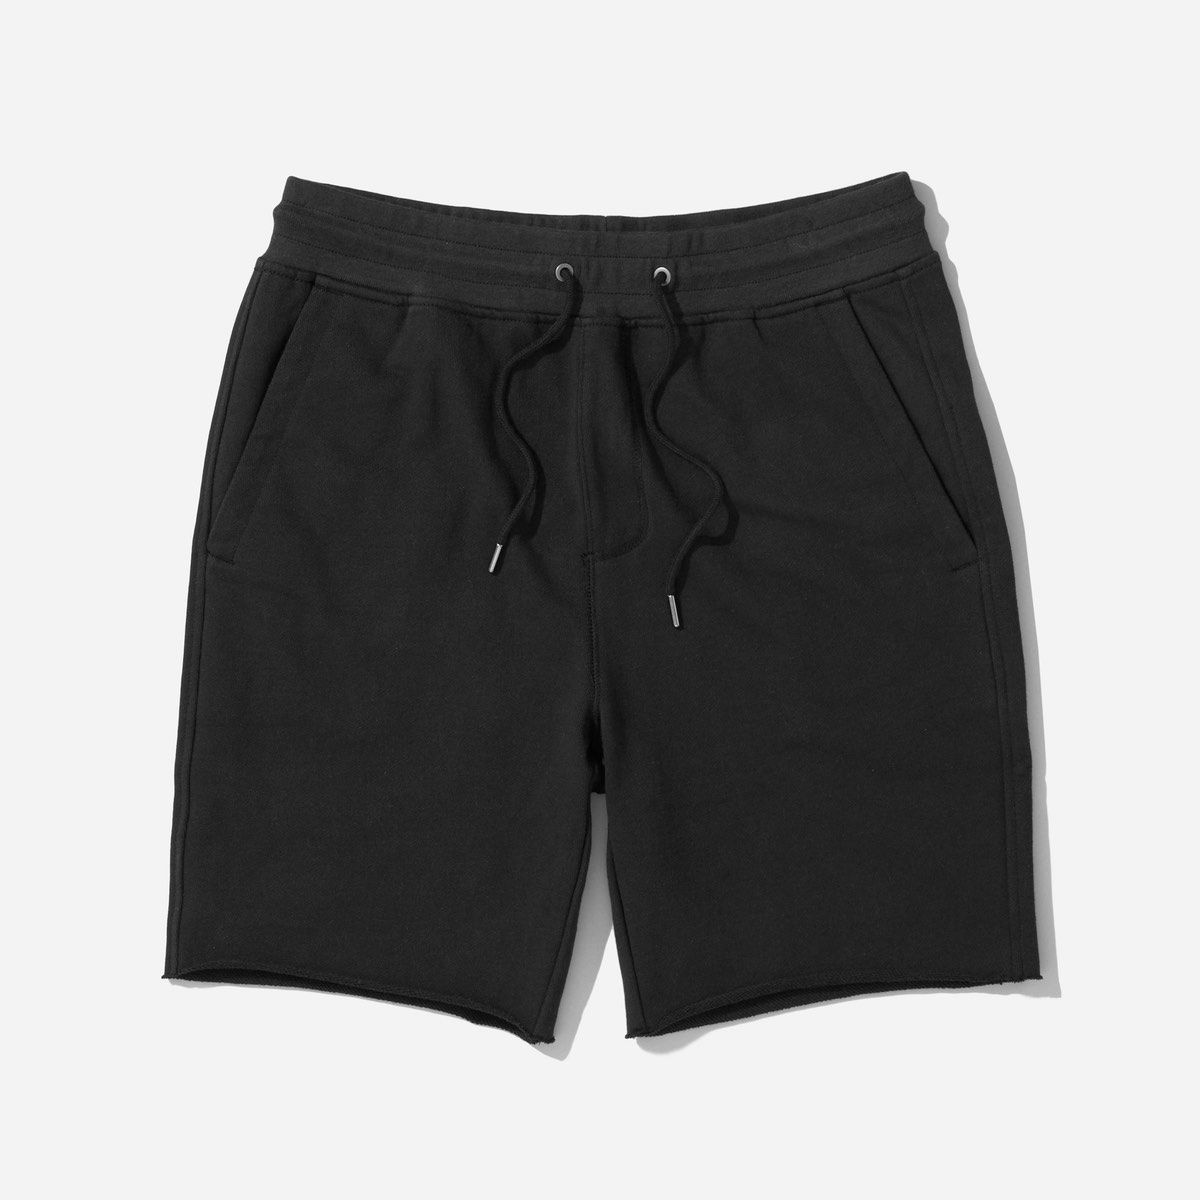 9a8b7ff7762d3 Men's French Terry Sweat Short | Everlane | Clothes and Style ...